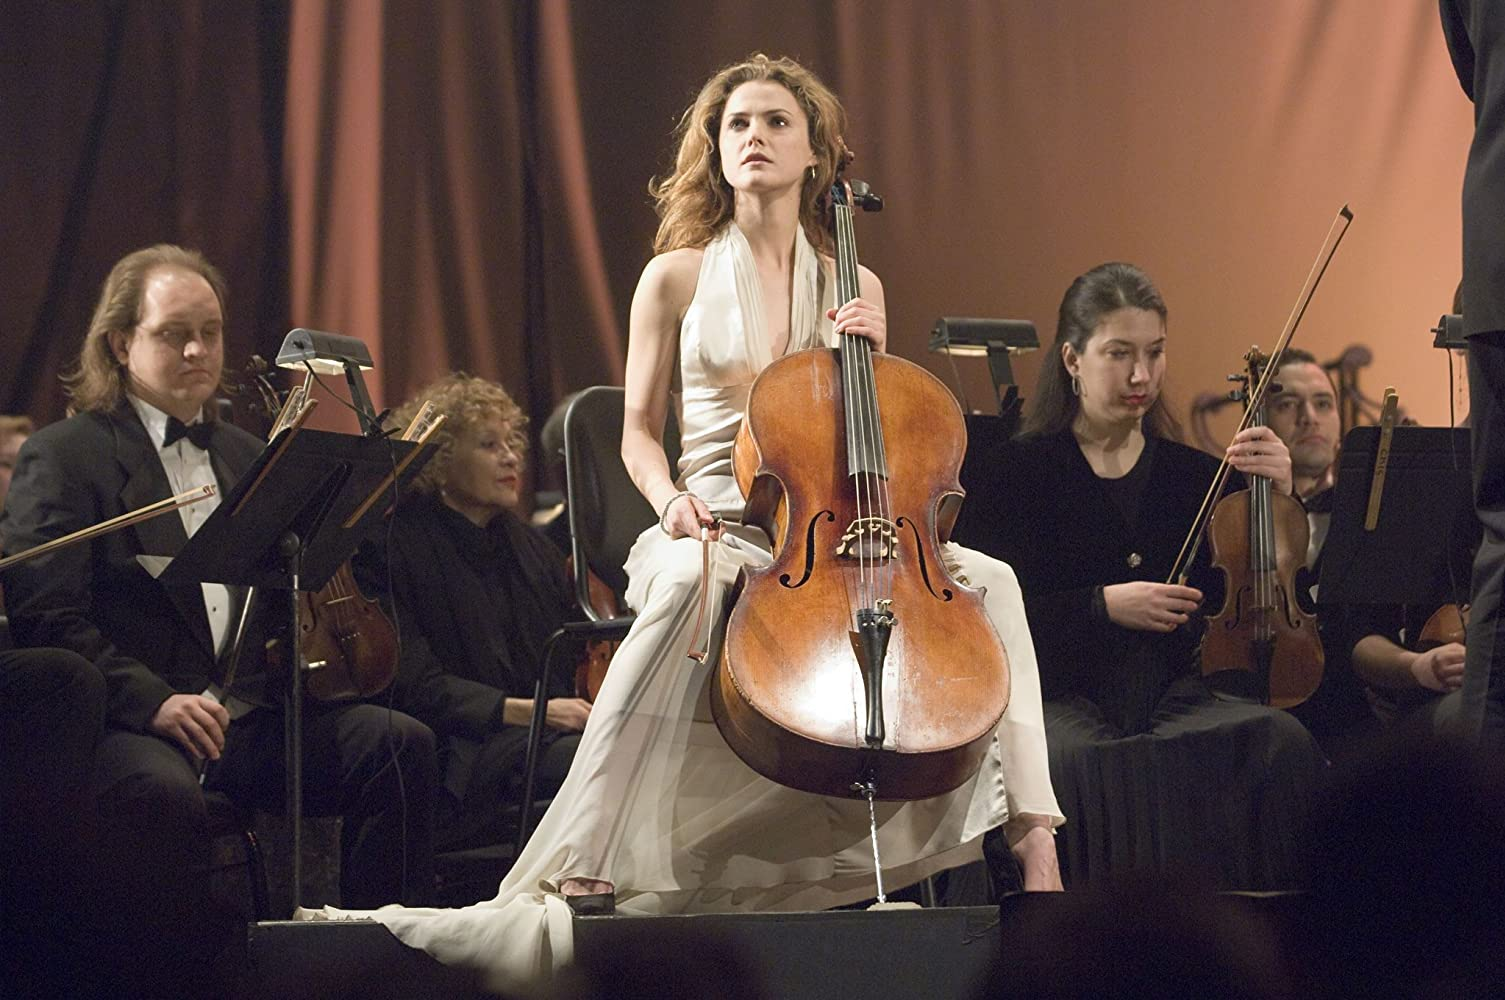 Keri Russell in August Rush 2007